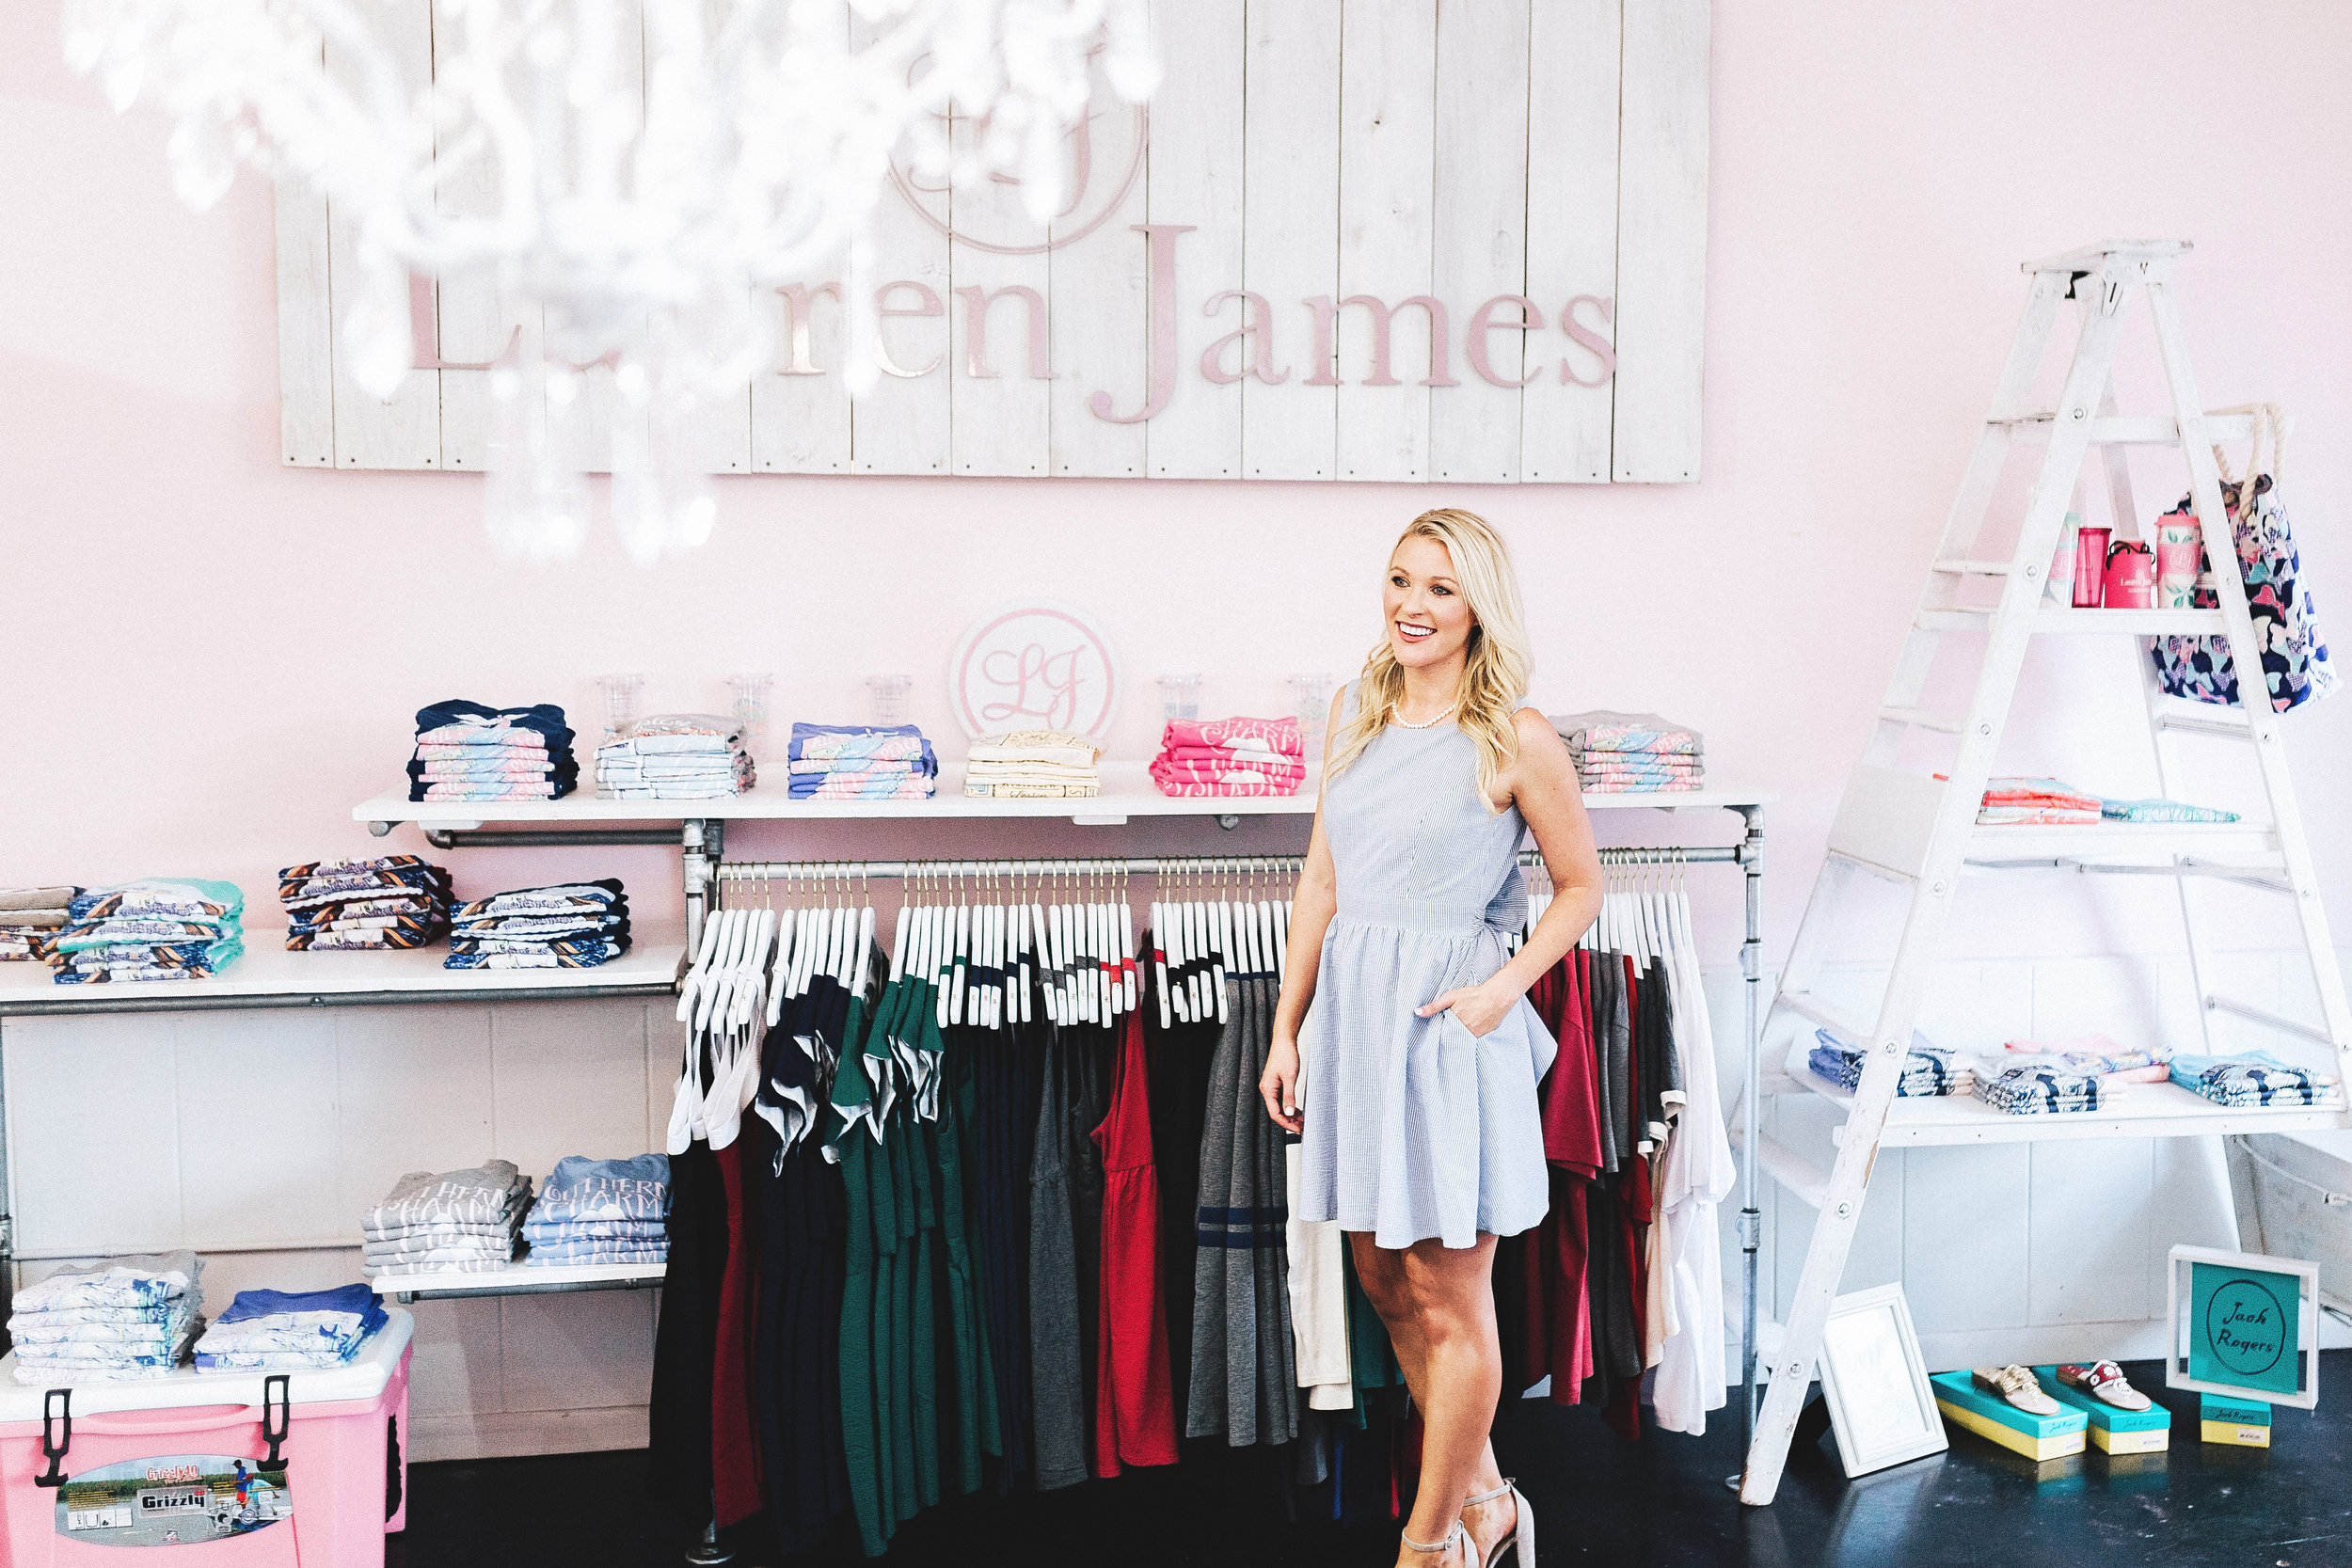 Lauren in the Lauren James store in Fayetteville, one of their three corporate stores. The other two are located in Southlake and Plano, Texas. (Photo by Kristen Herrington Photography)